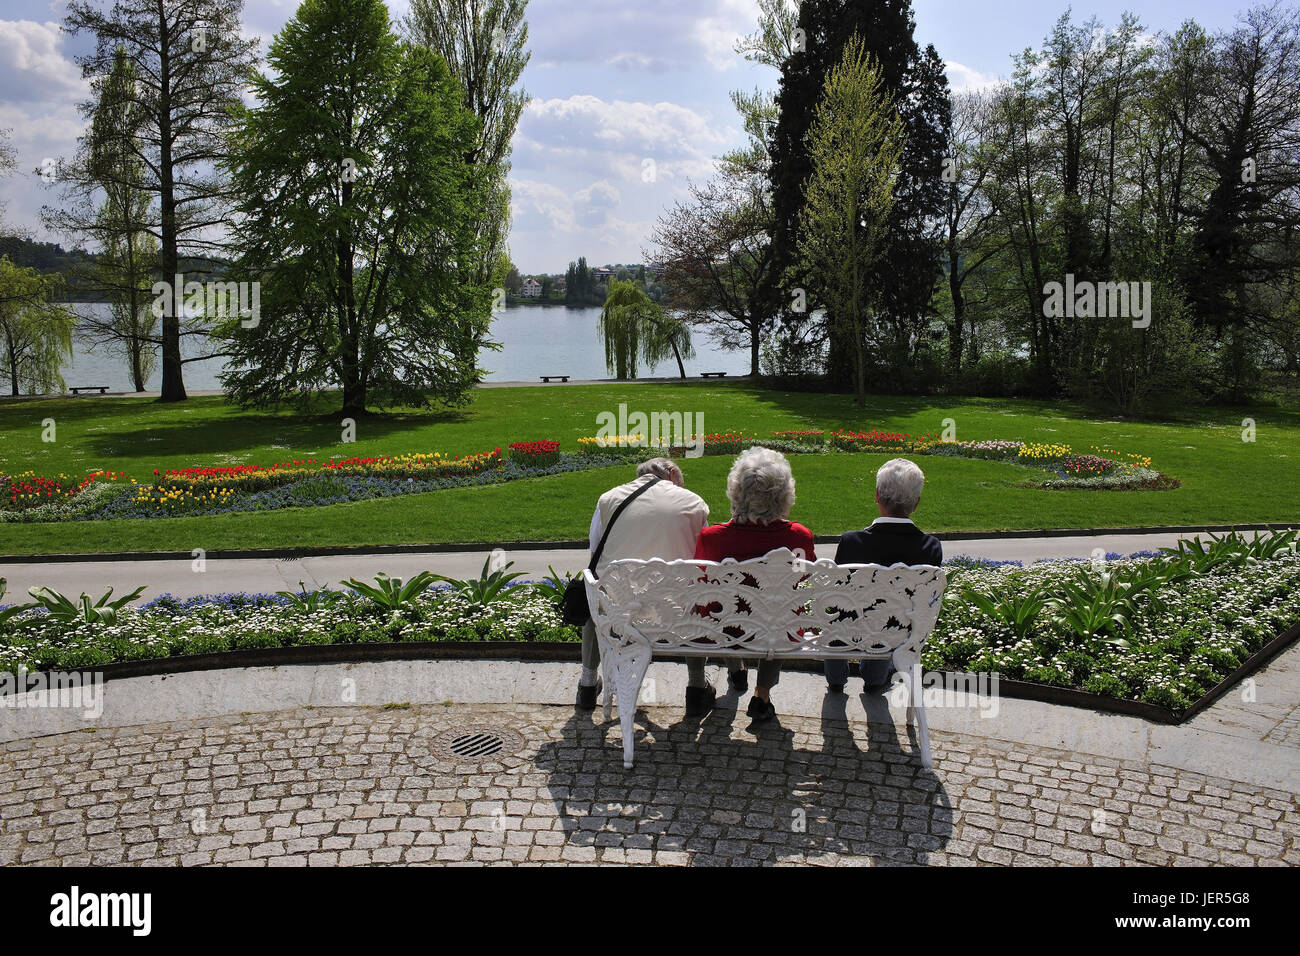 Island Mainau in Lake of Constance, three older people rest on a bank in the garden of the island Mainau, Insel - Stock Image